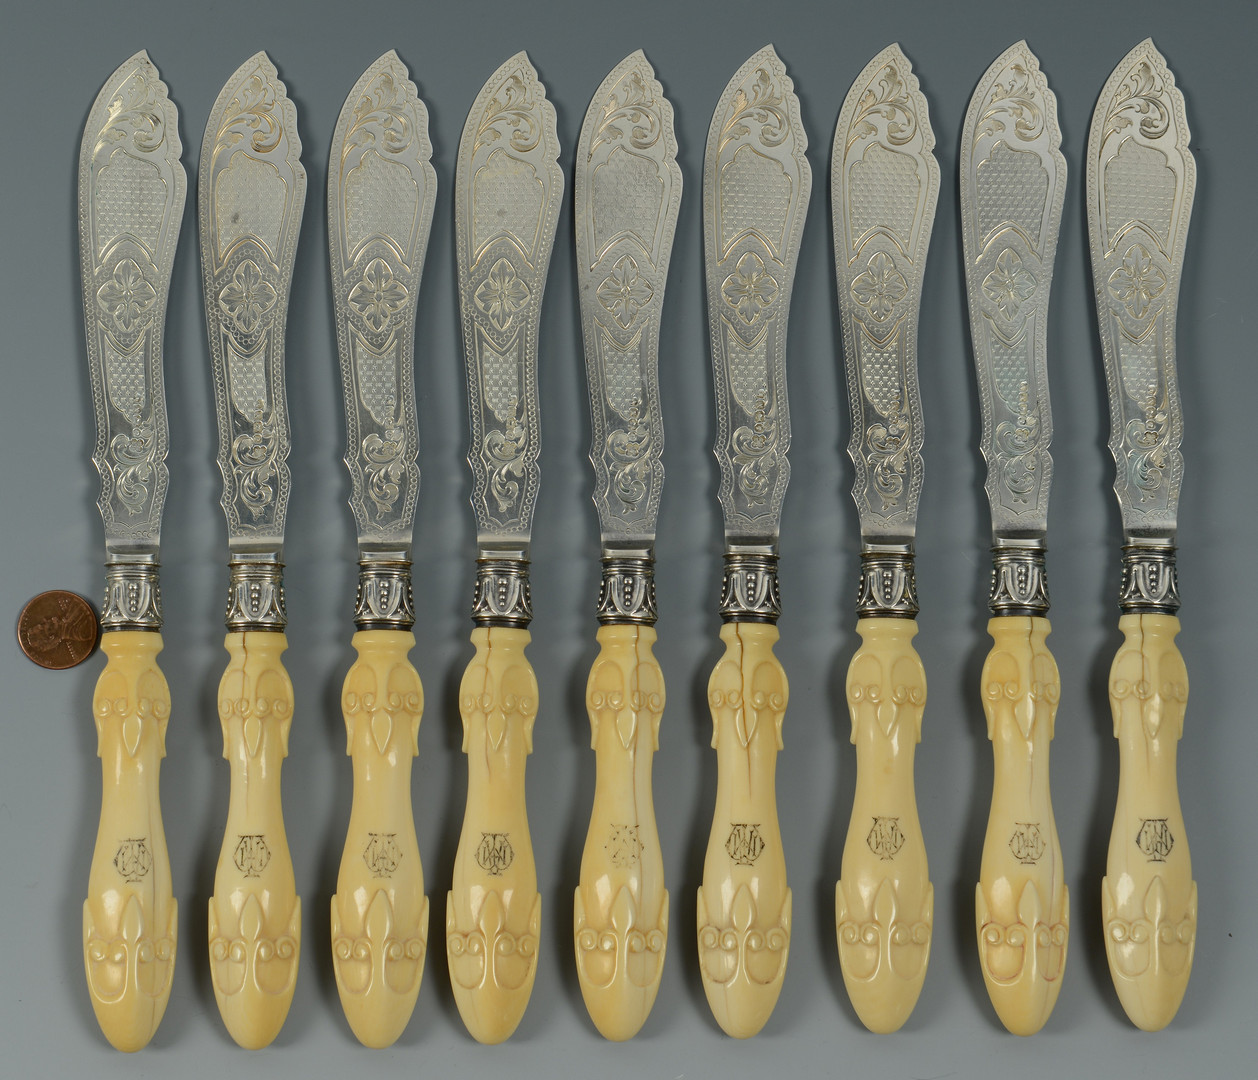 Lot 843: 9 English fish knives